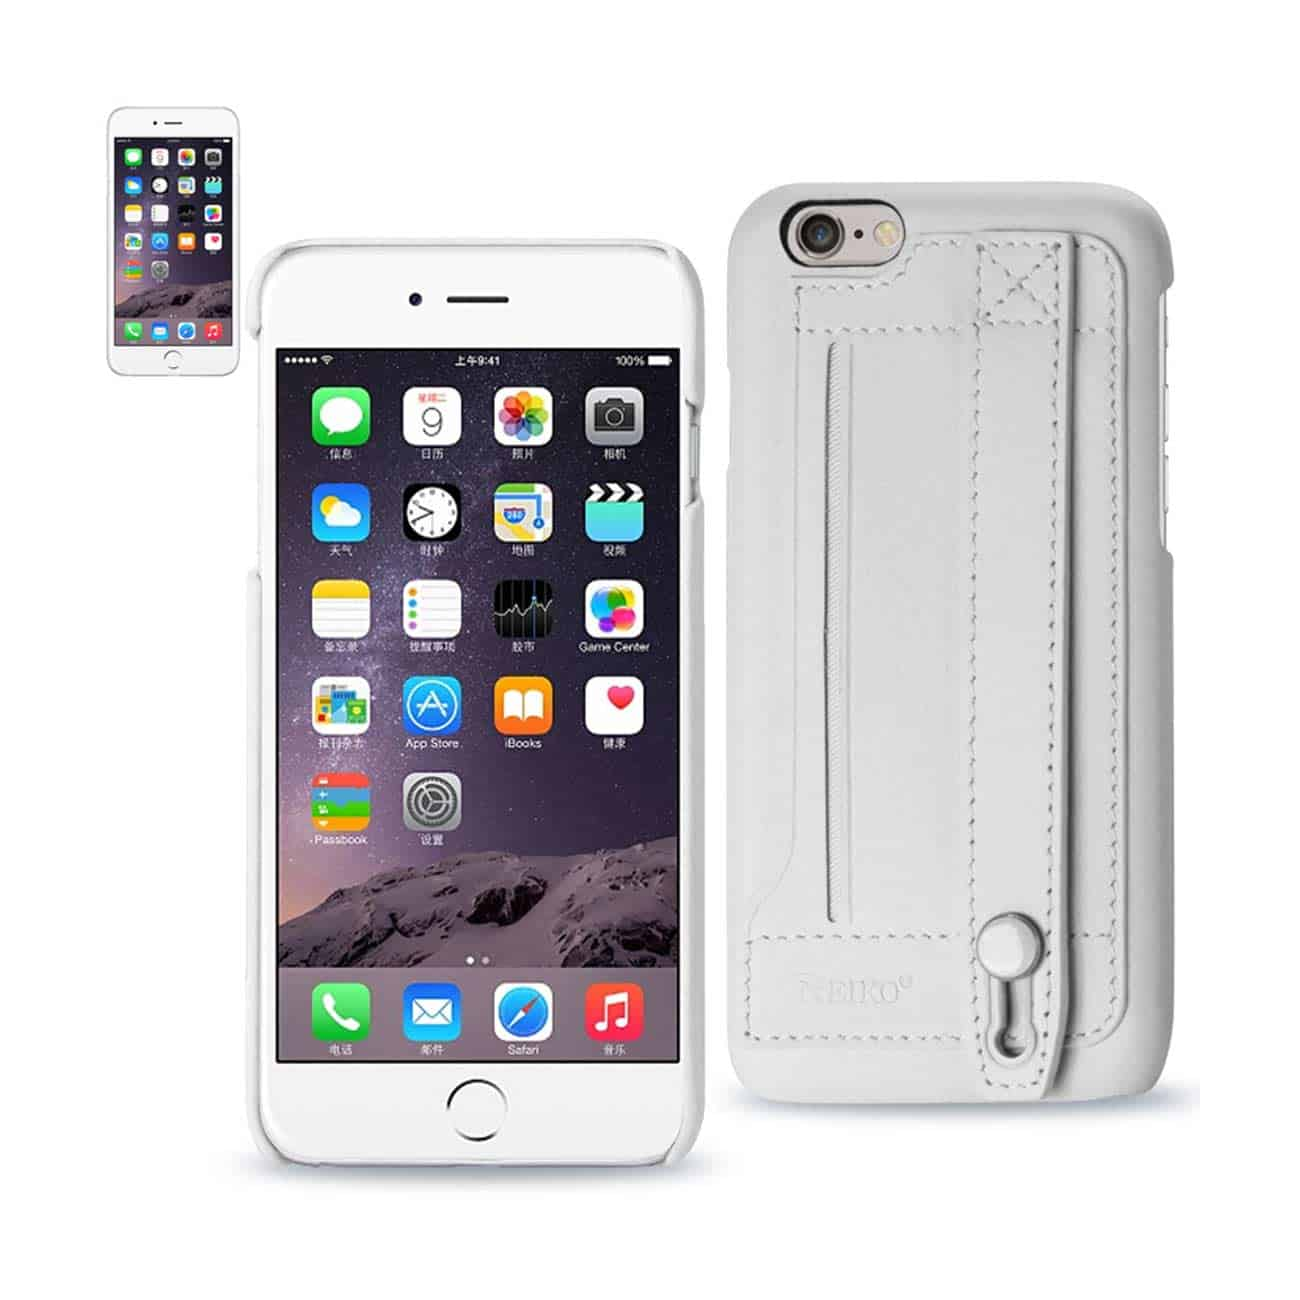 IPHONE 6 GENUINE LEATHER HAND STRAP CASE IN IVORY